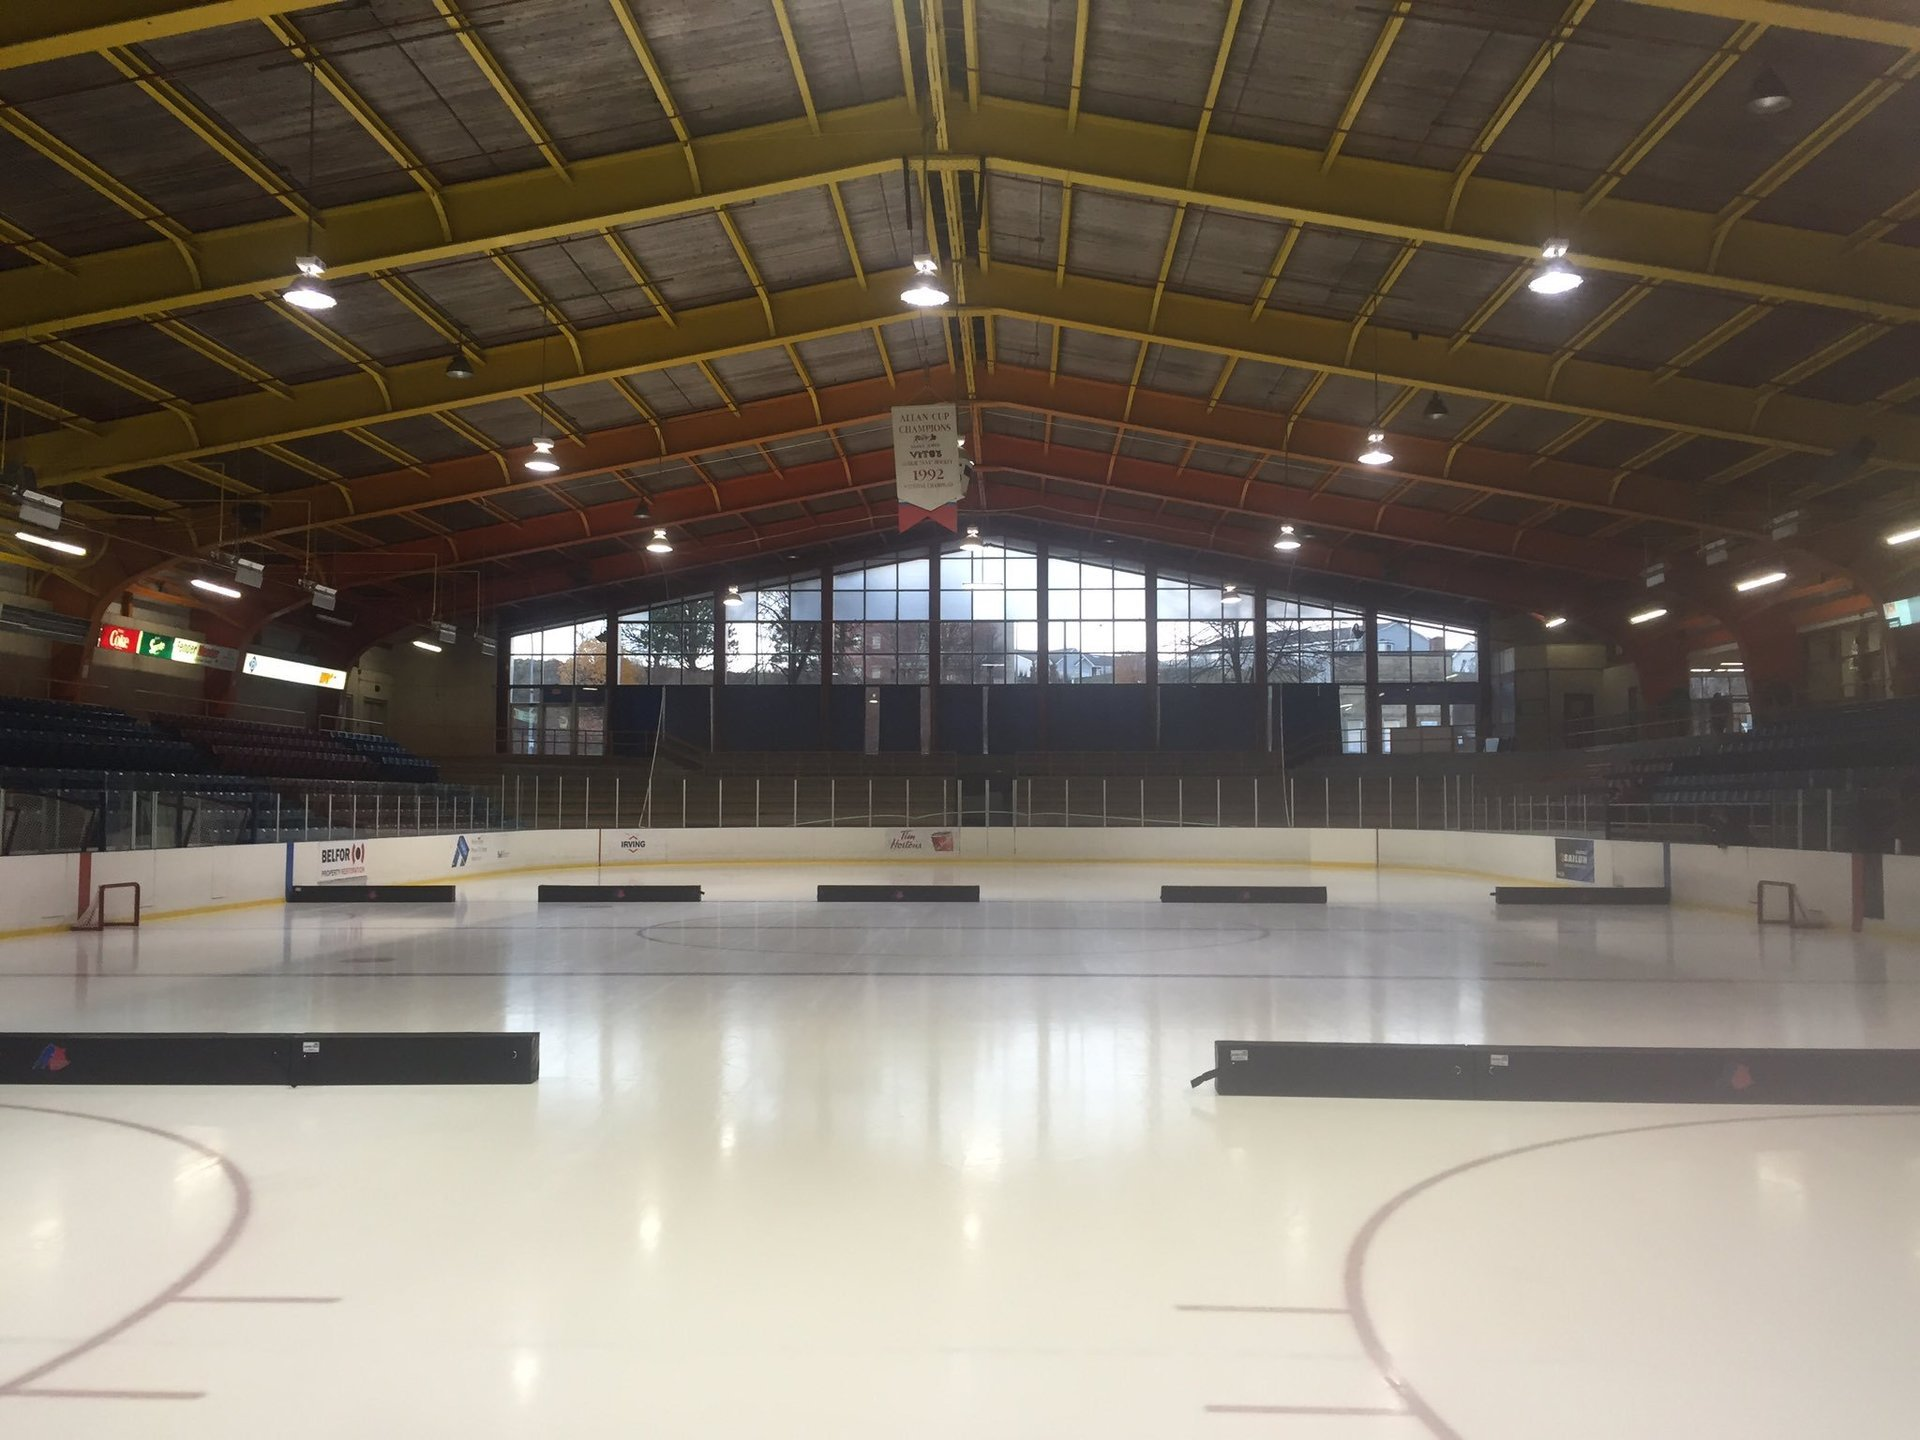 Hockey Rink Dividers - Decrease The Space, Increase The Pace